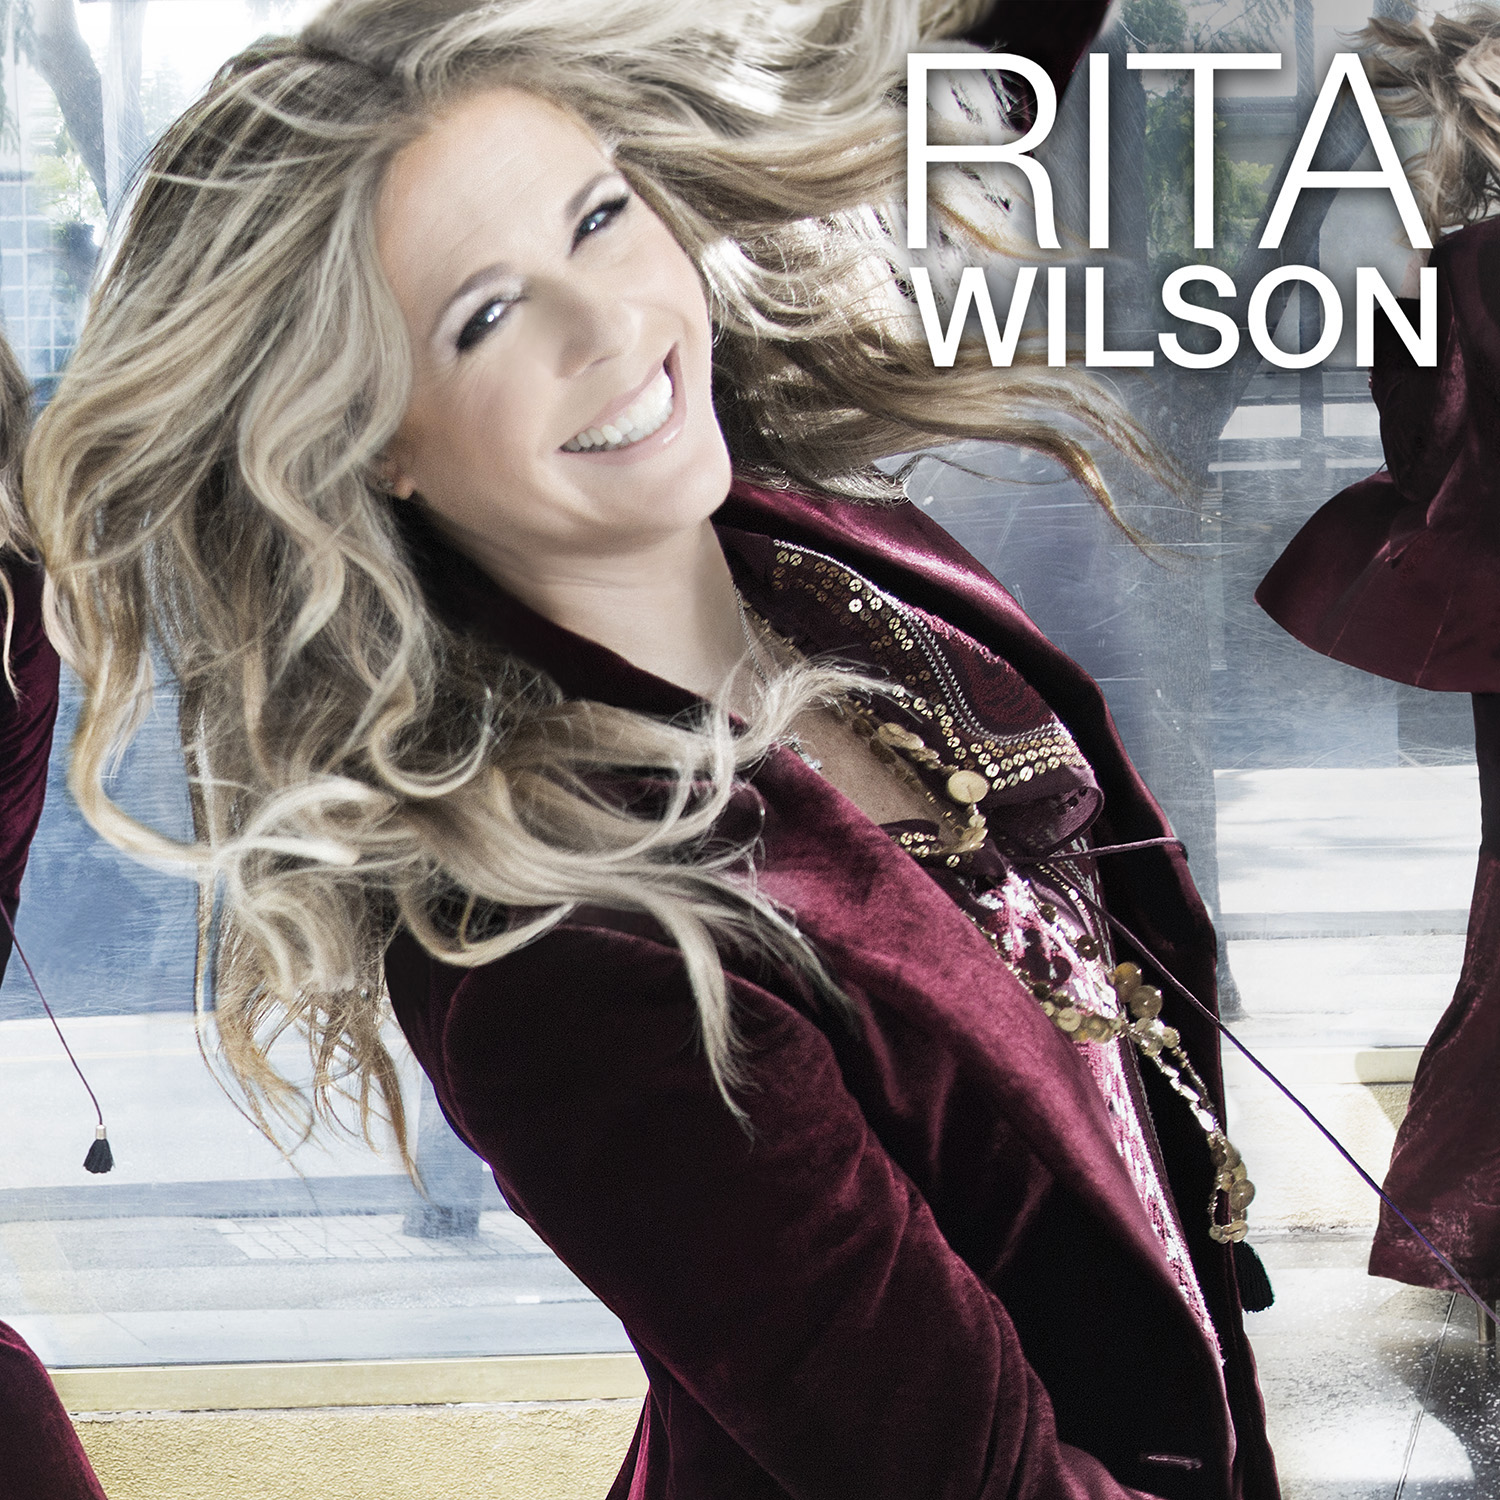 RitaWilson_FinalCover